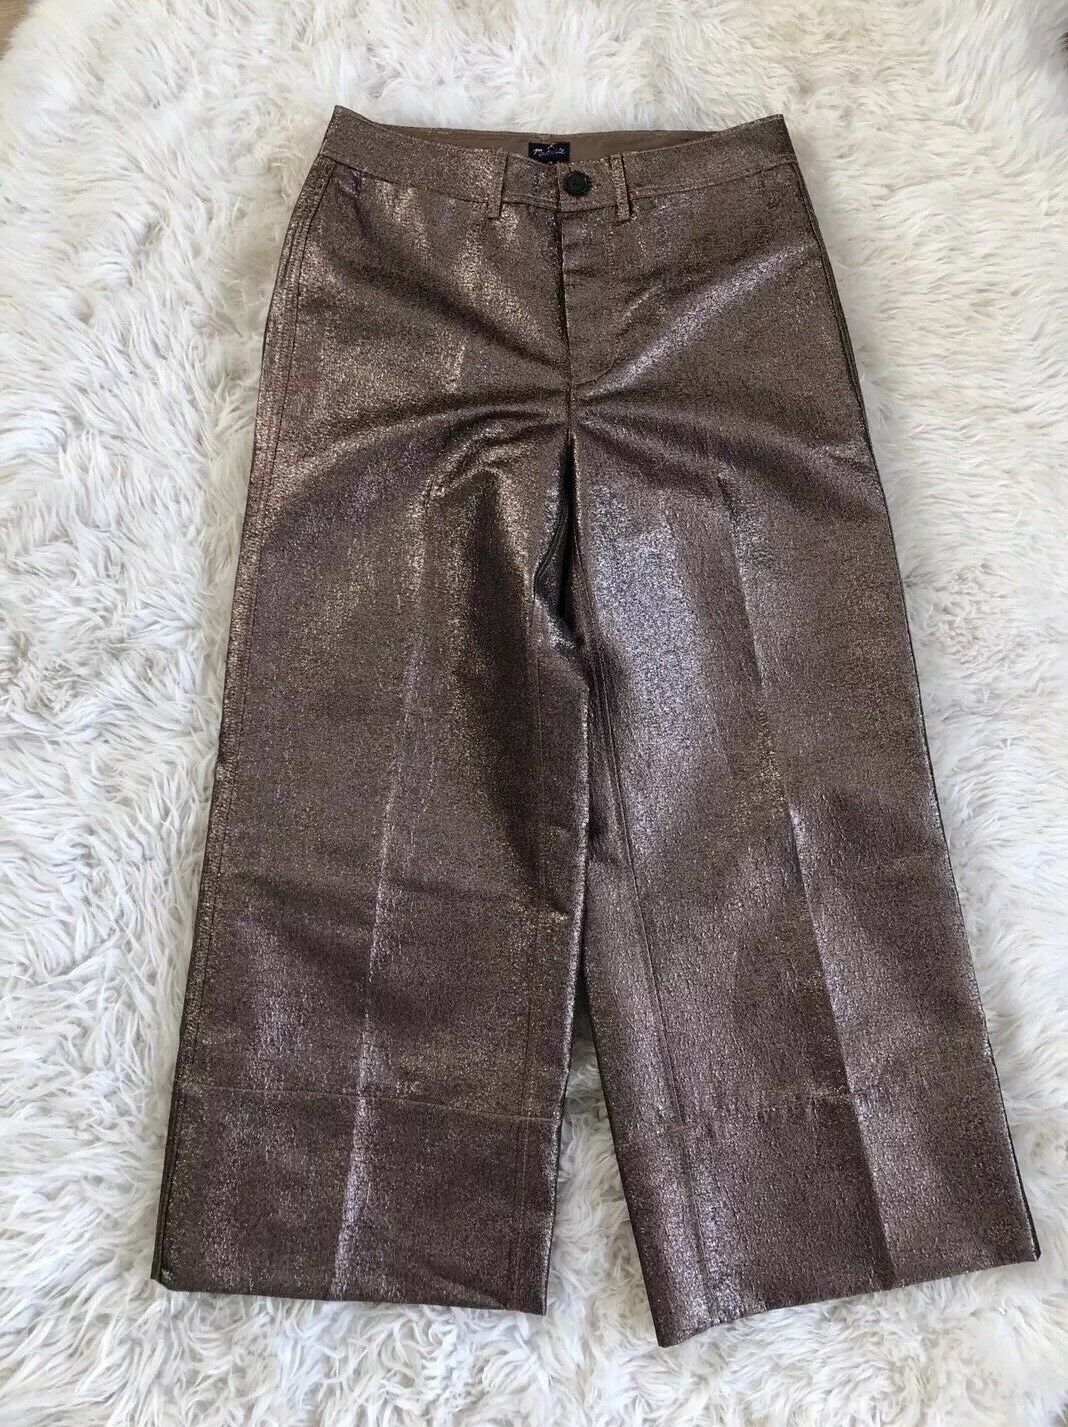 New Madewell Langford Wide-Leg Crop Pants in Metallic Sand Copper gold 29 H3022